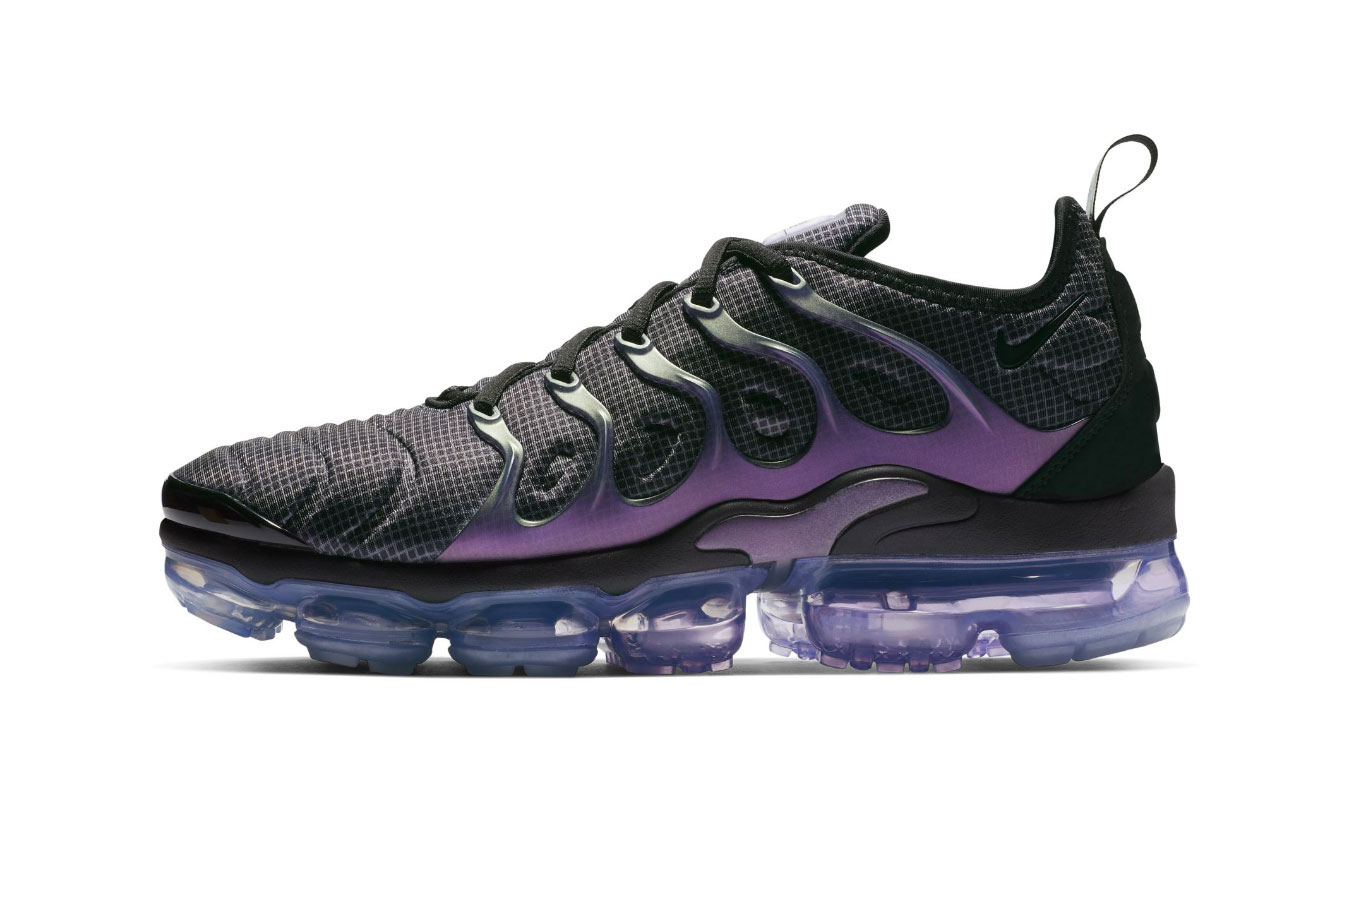 Vapormax Plus Colorway ReleaseHypebeast Nike Eggplant Air TclKJ1F